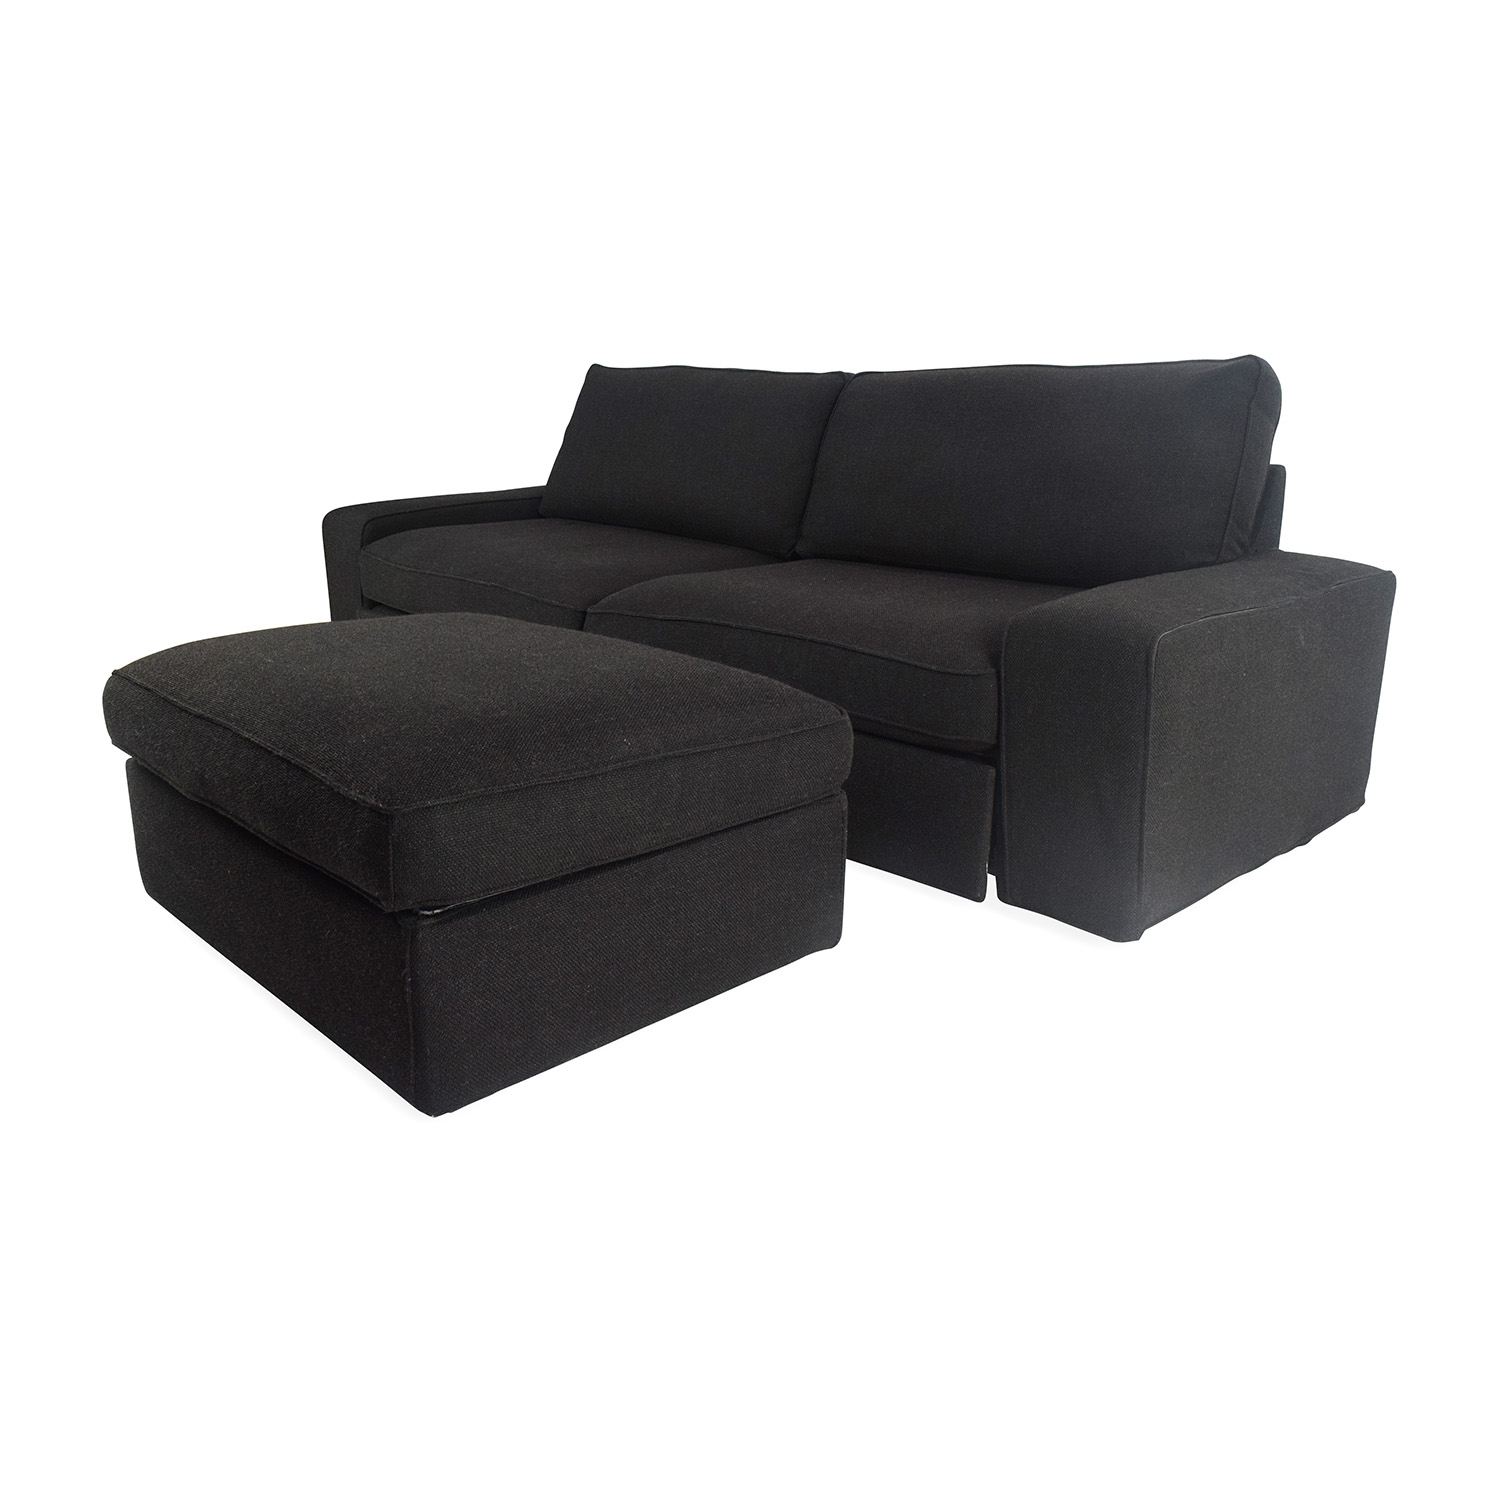 81 off ikea ikea oversized sofa and ottoman sofas. Black Bedroom Furniture Sets. Home Design Ideas